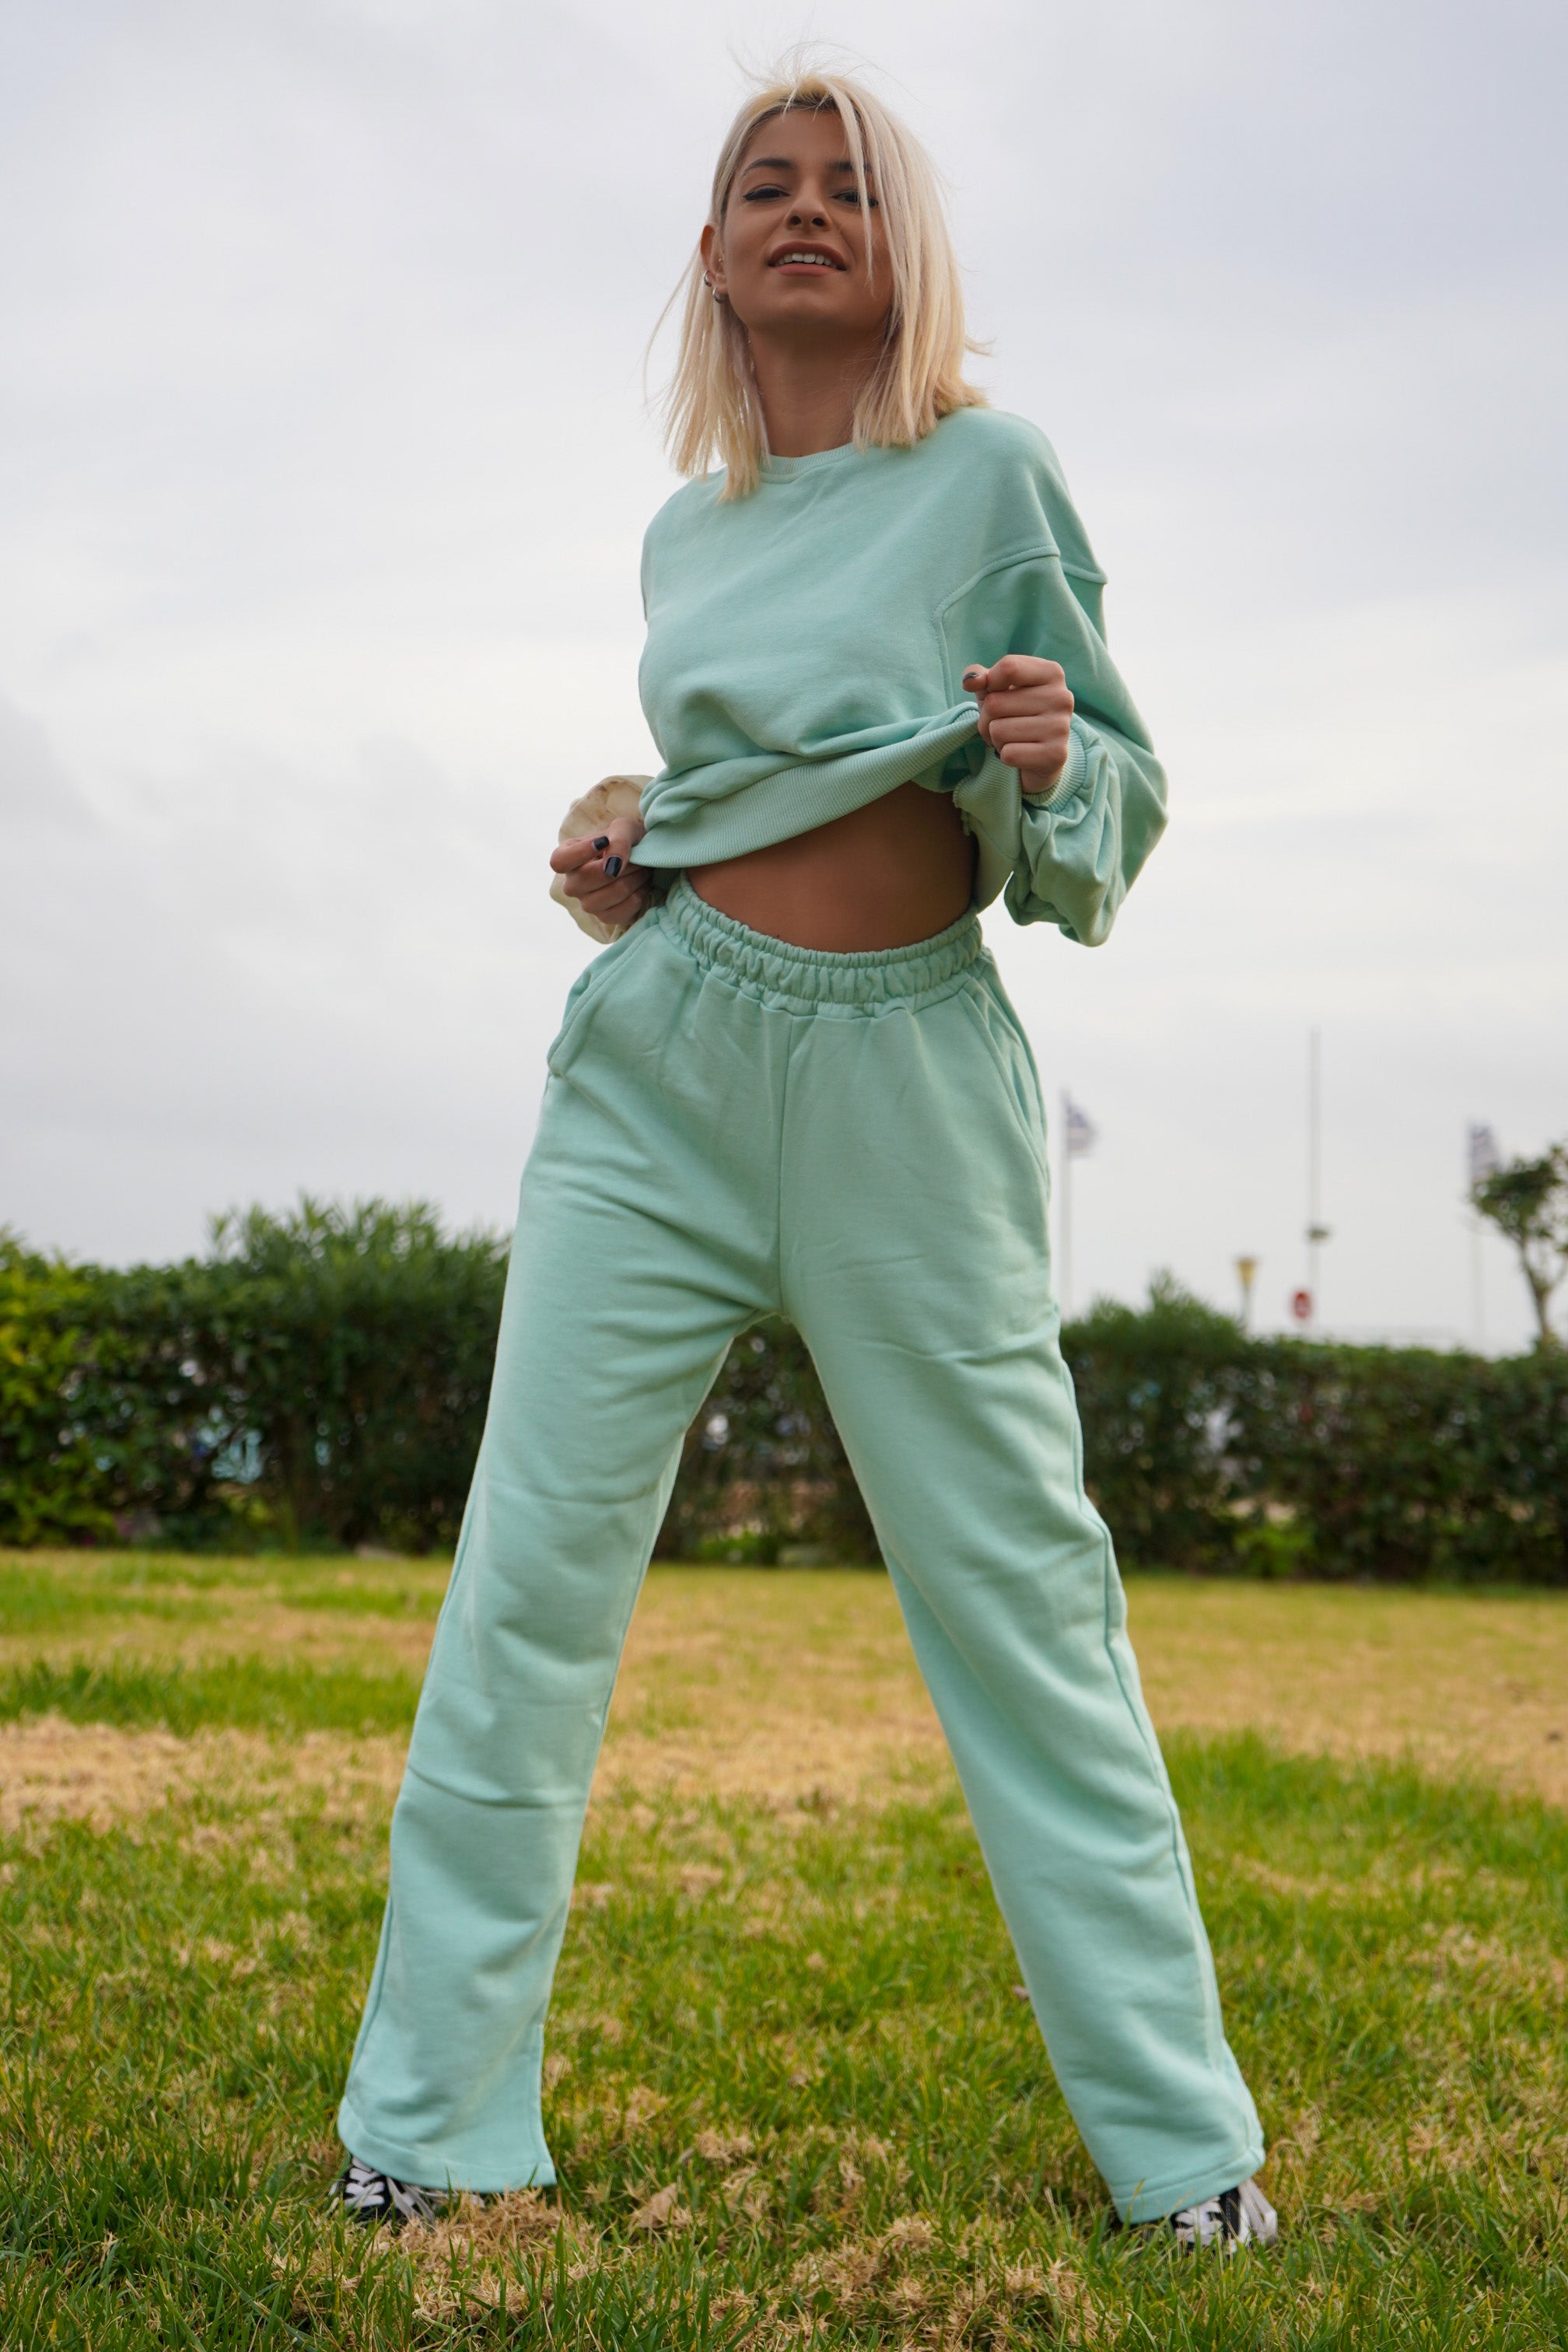 Sweatsuit in mint